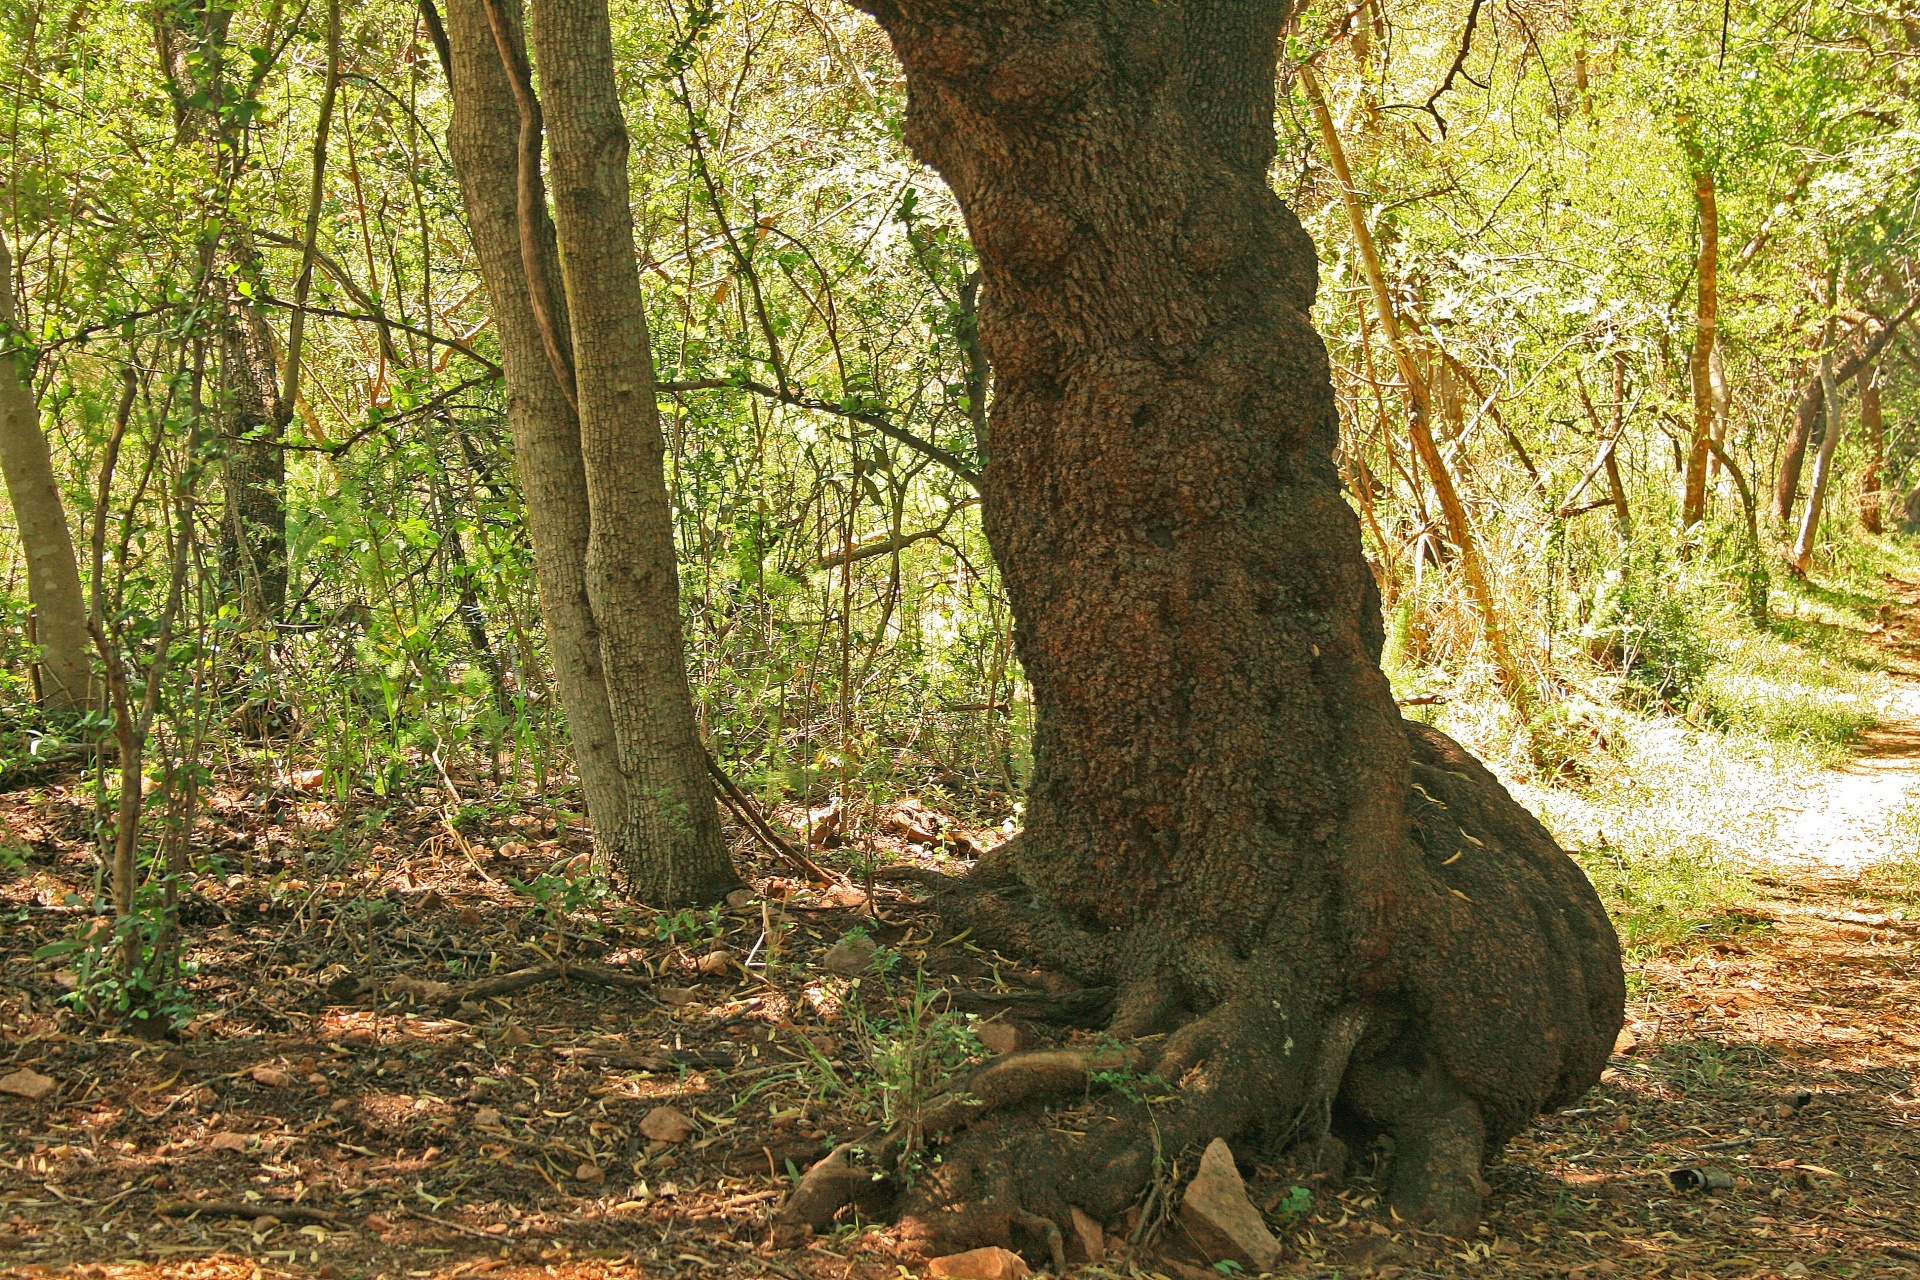 Gnarled Tree Trunk Free Stock Photo - Public Domain Pictures